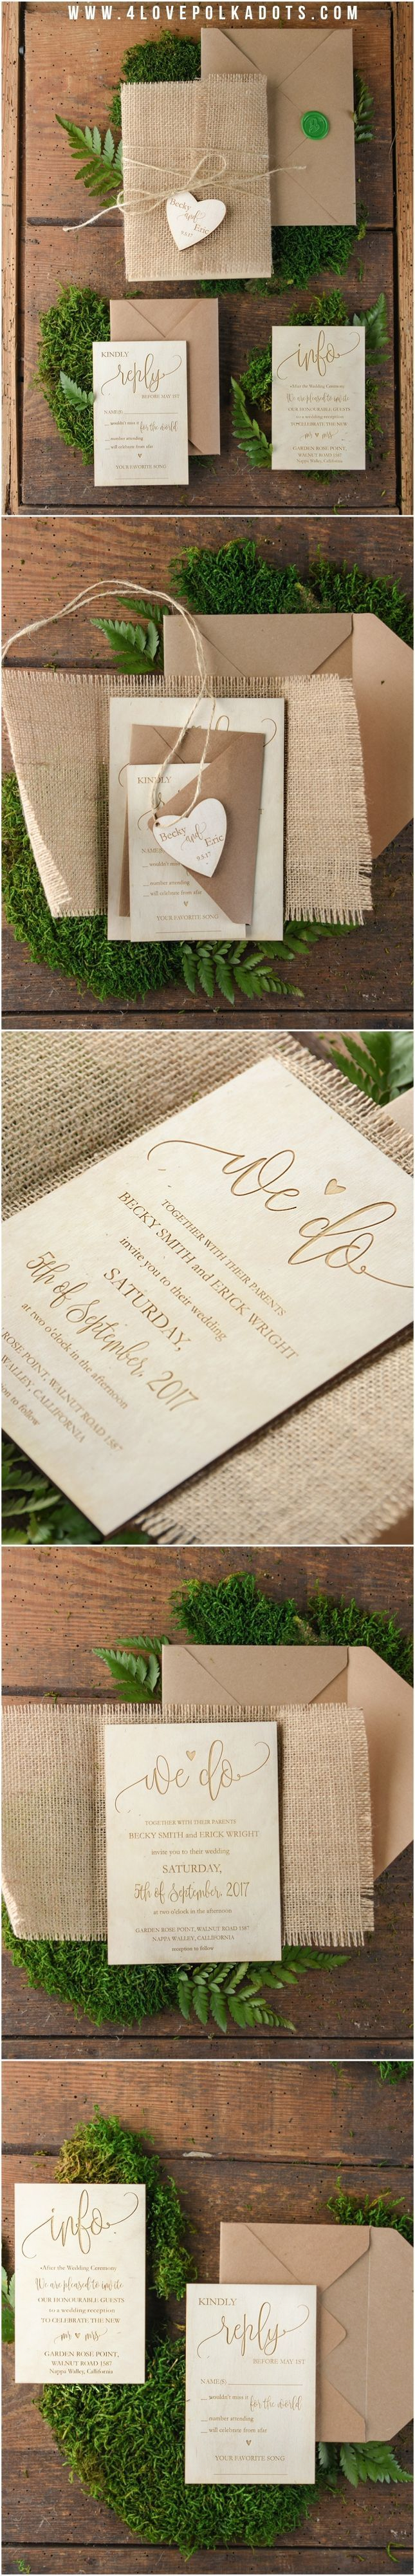 Wooden Rustic Wedding Invitations with burlap wrapping and heart tag ...